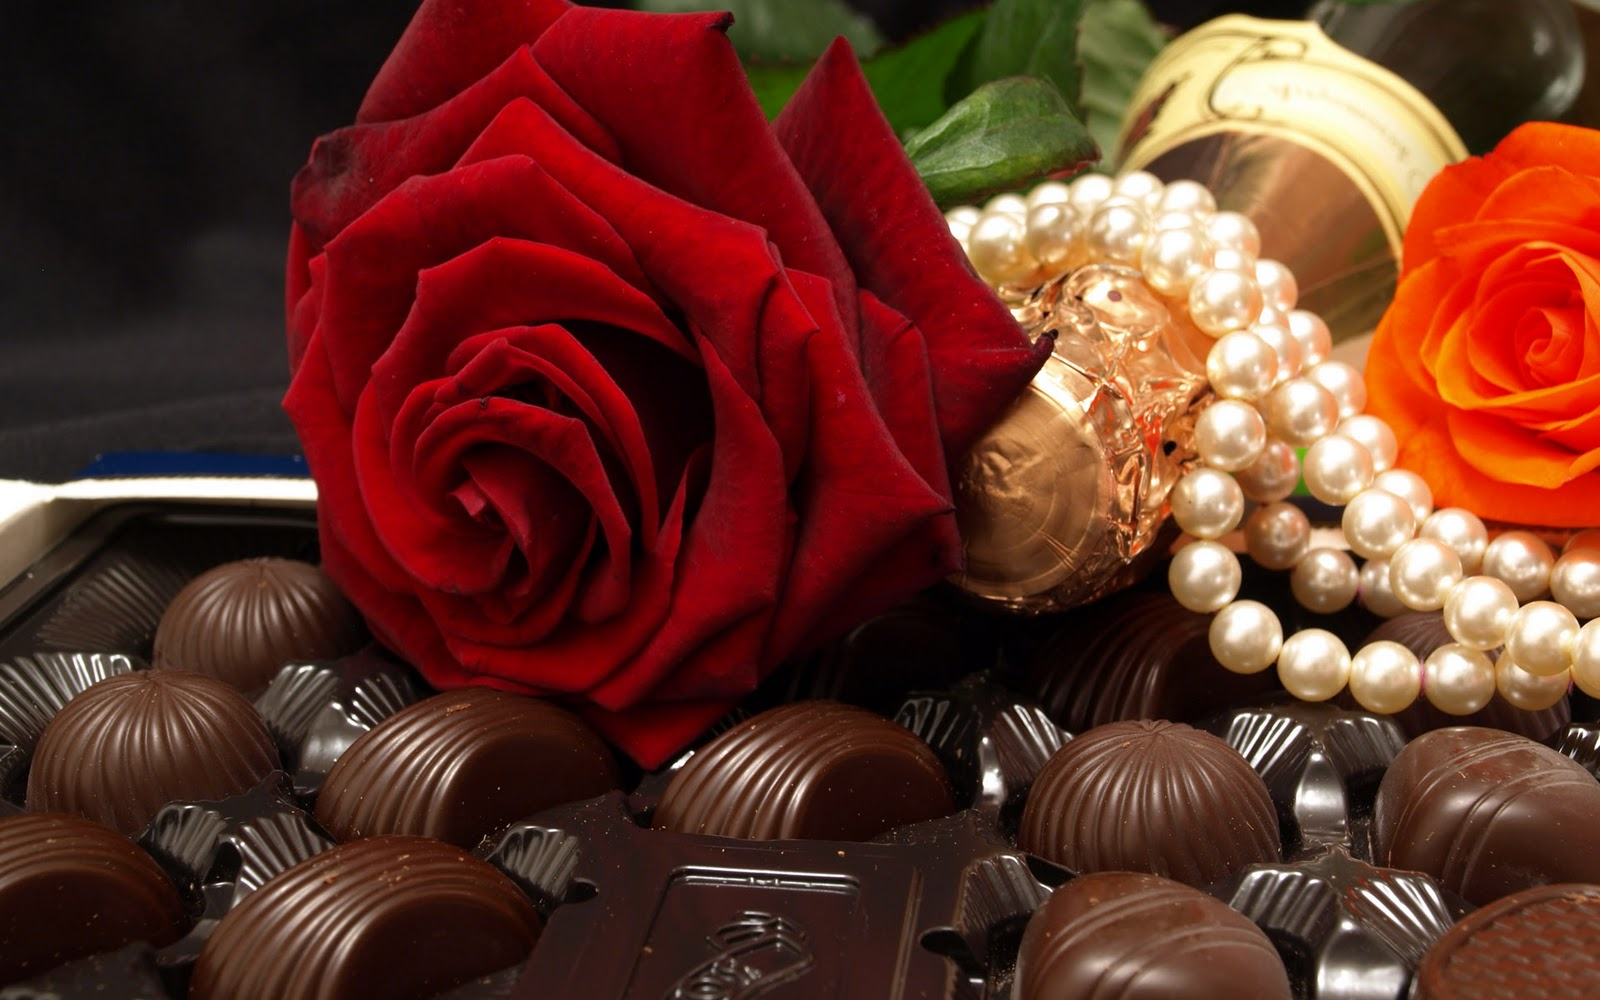 chocolates with rose Get Latest Wallpapers 1600x1000